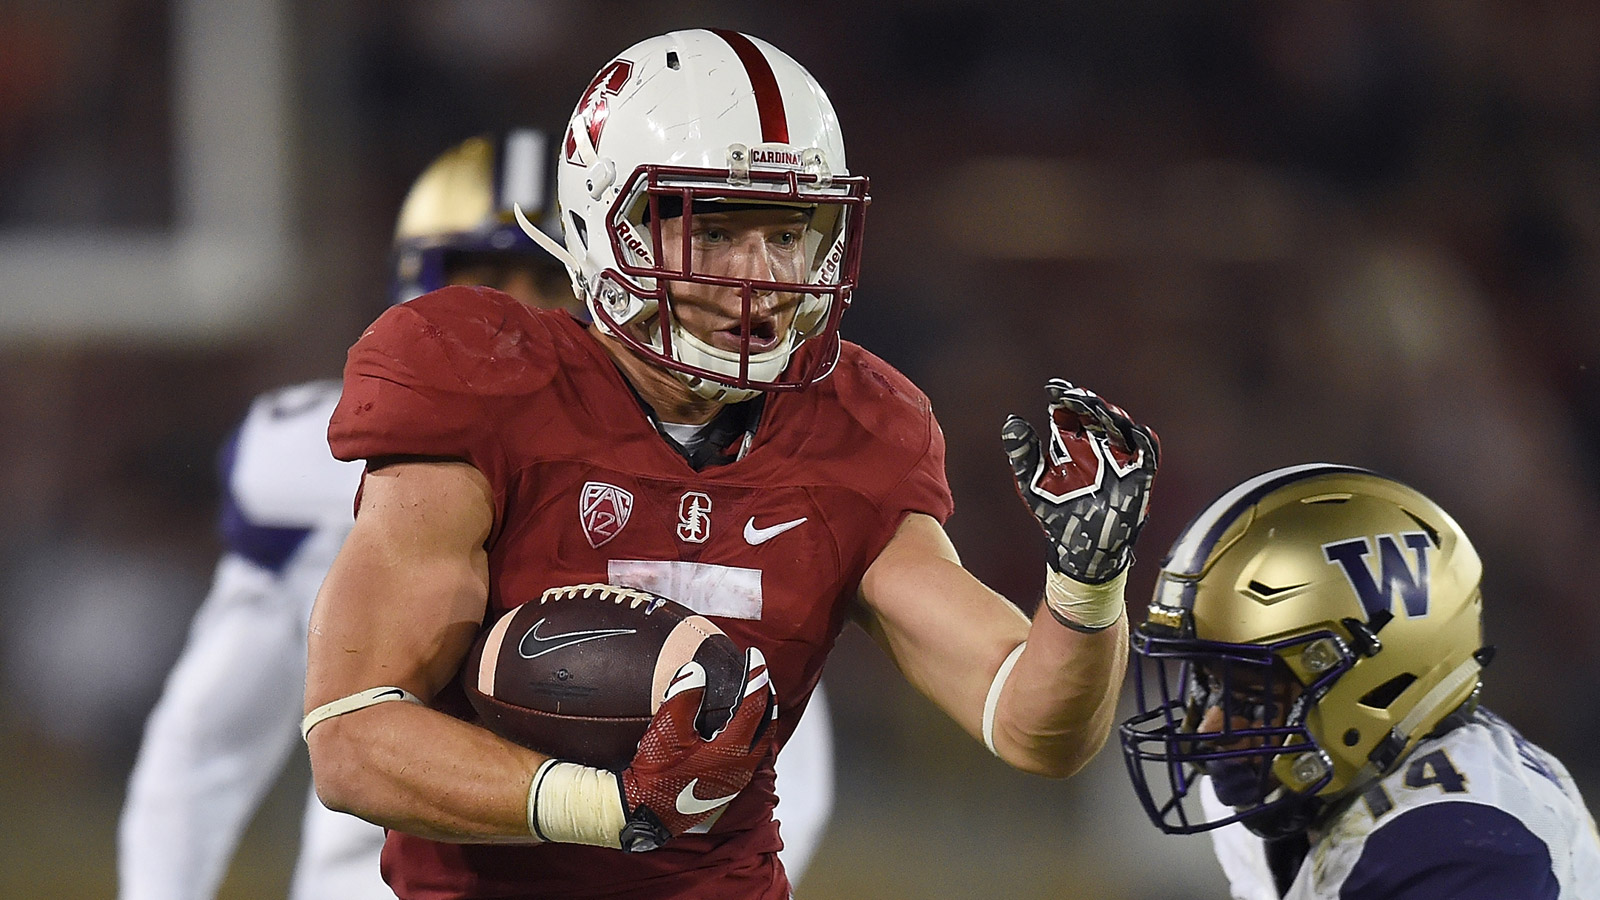 Christian McCaffrey #5 of the Stanford Cardinal's scores a touchdown breaking the tackle of  JoJo McIntosh #14 of the Washington Huskies at Stanford Stadium on Oct. 24, 2015. (credit: Thearon W. Henderson/Getty Images)